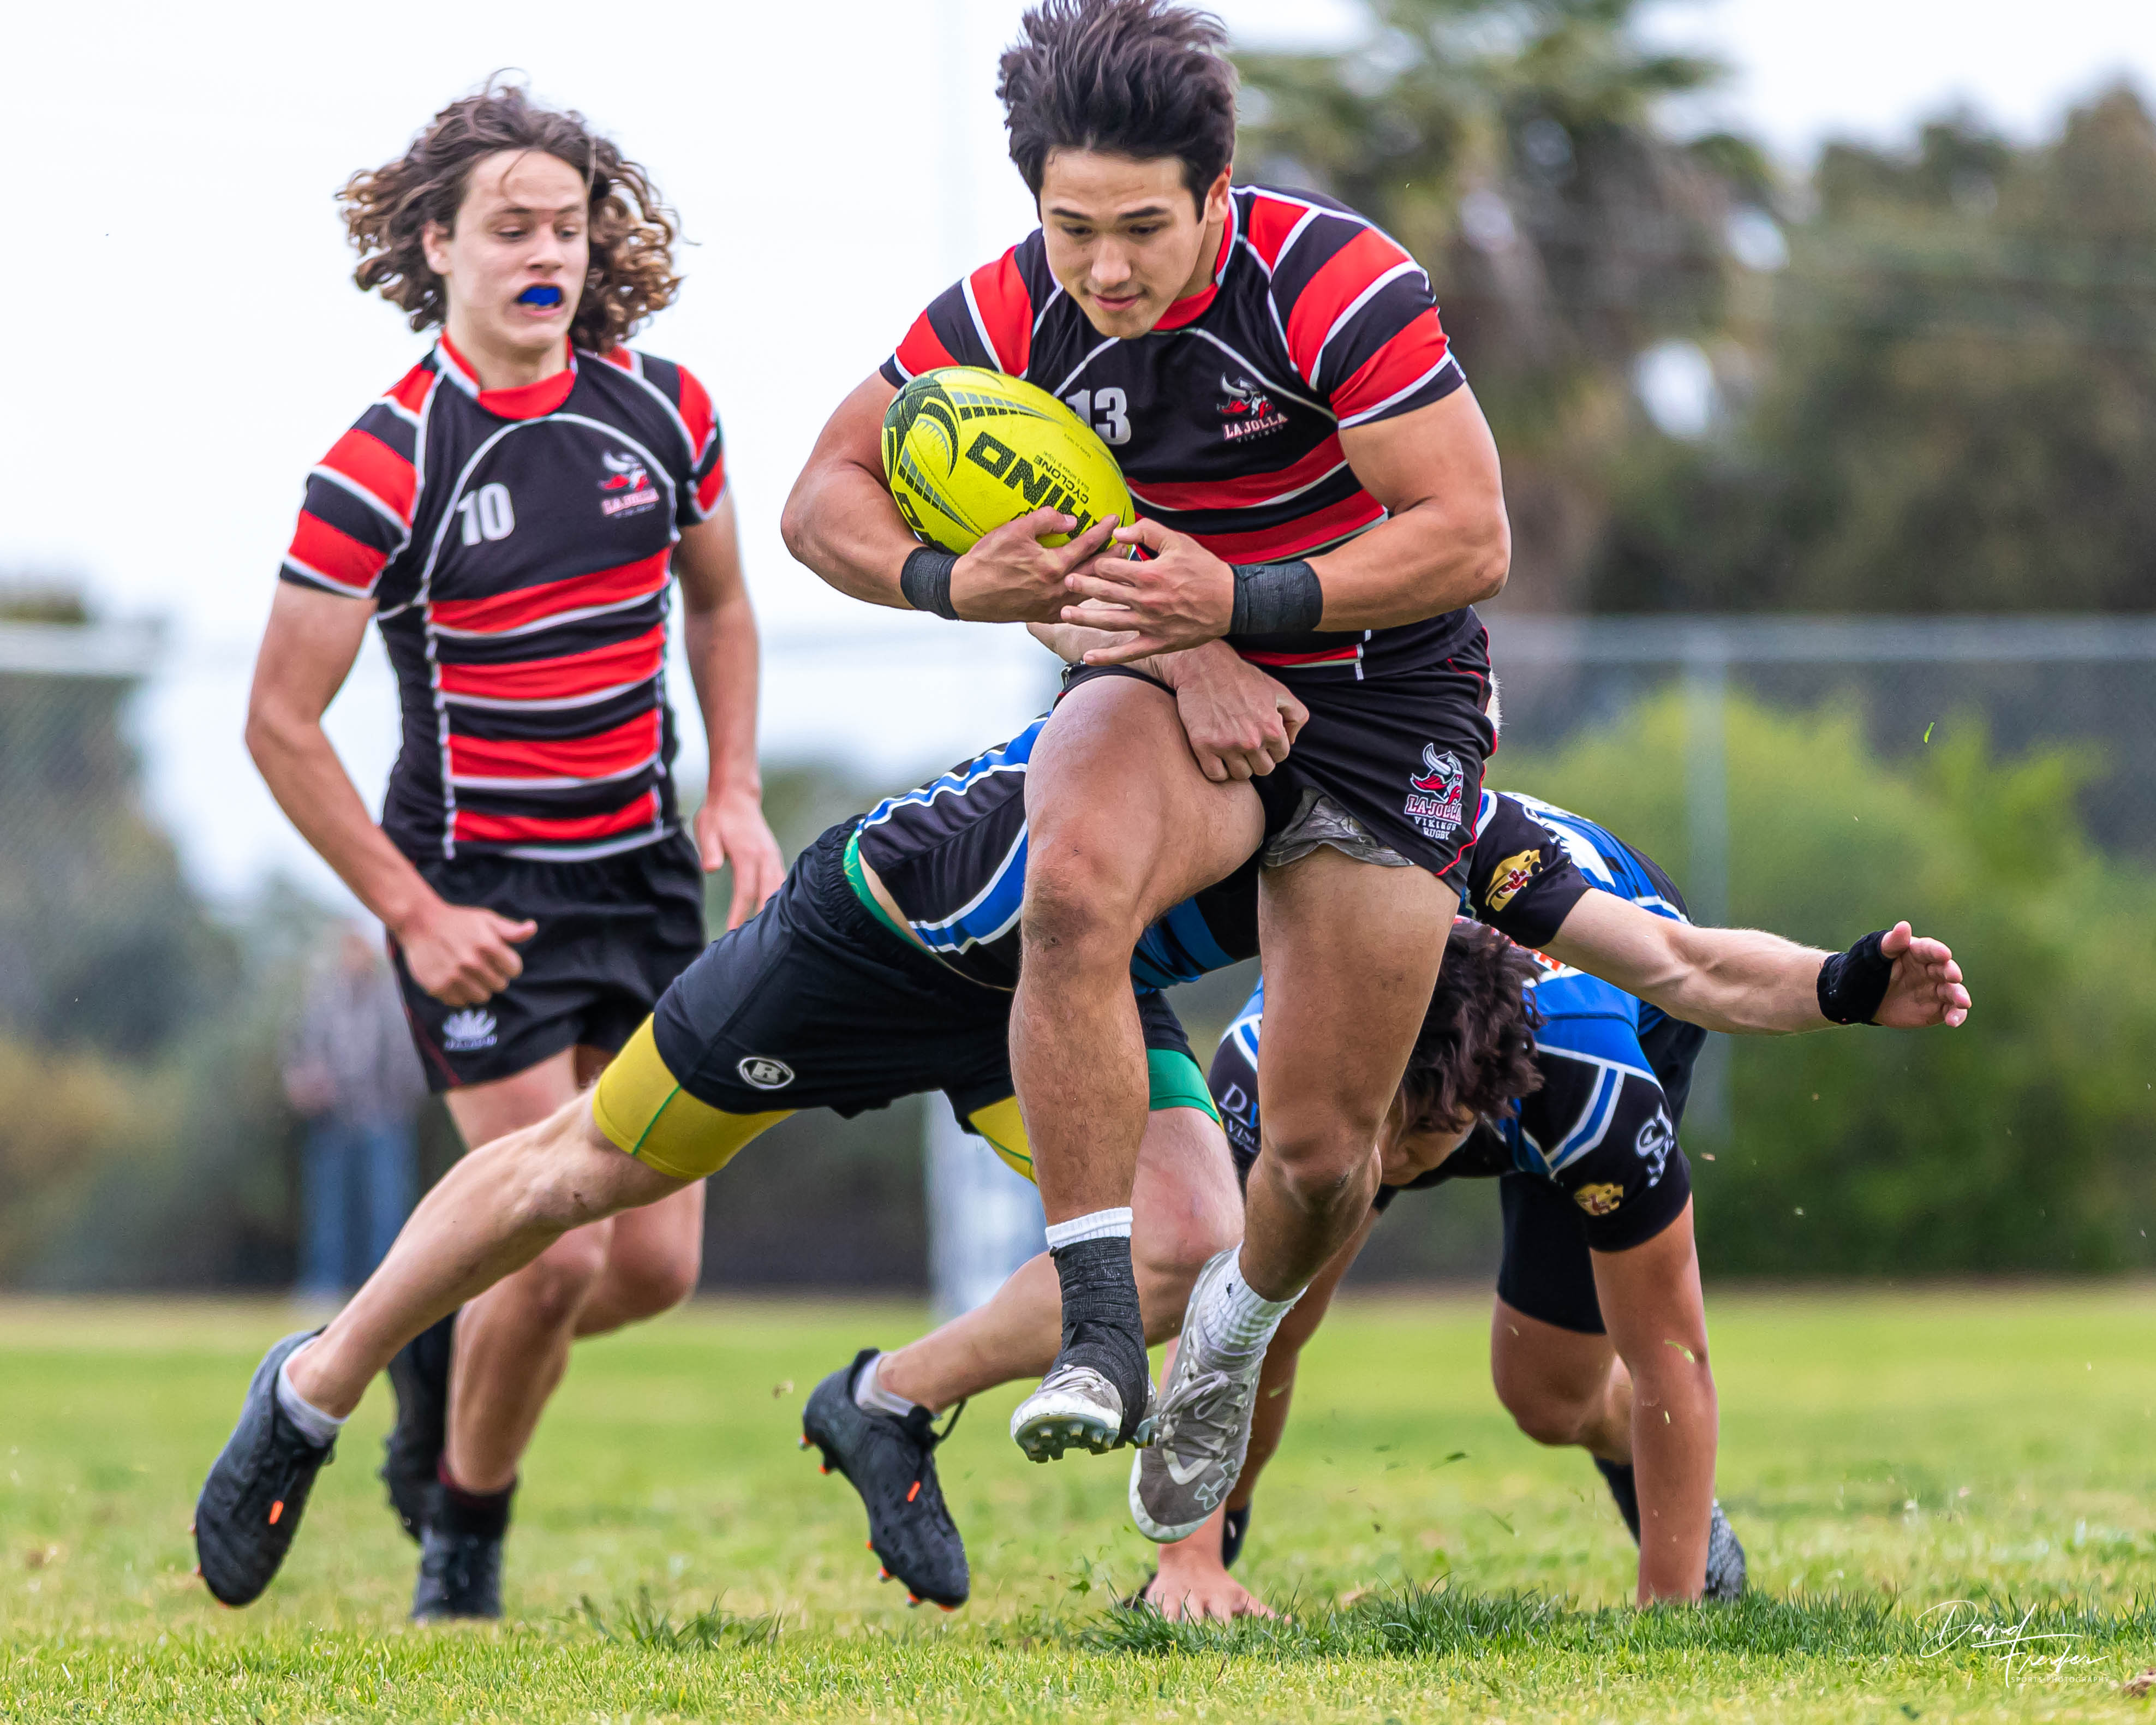 LaJollaRugby51